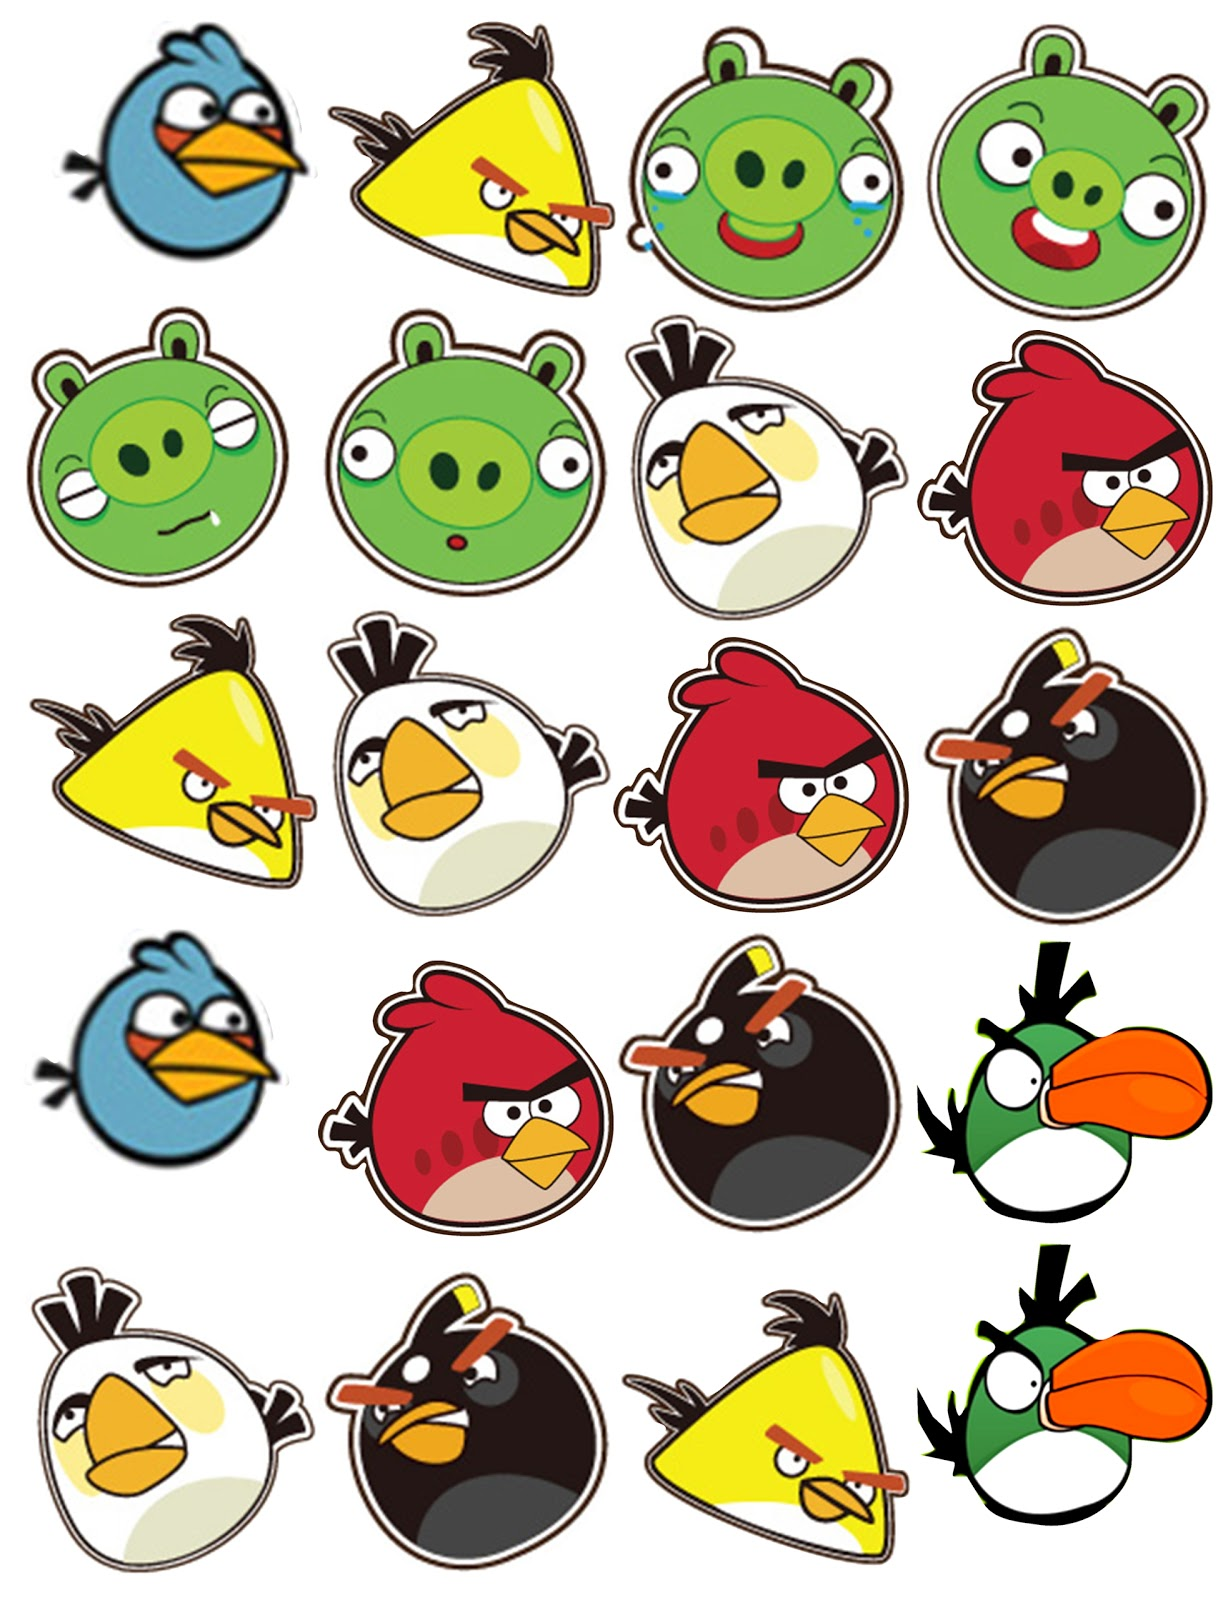 The Sew*er, The Caker, The CopyCat Maker: Angry Bird ...